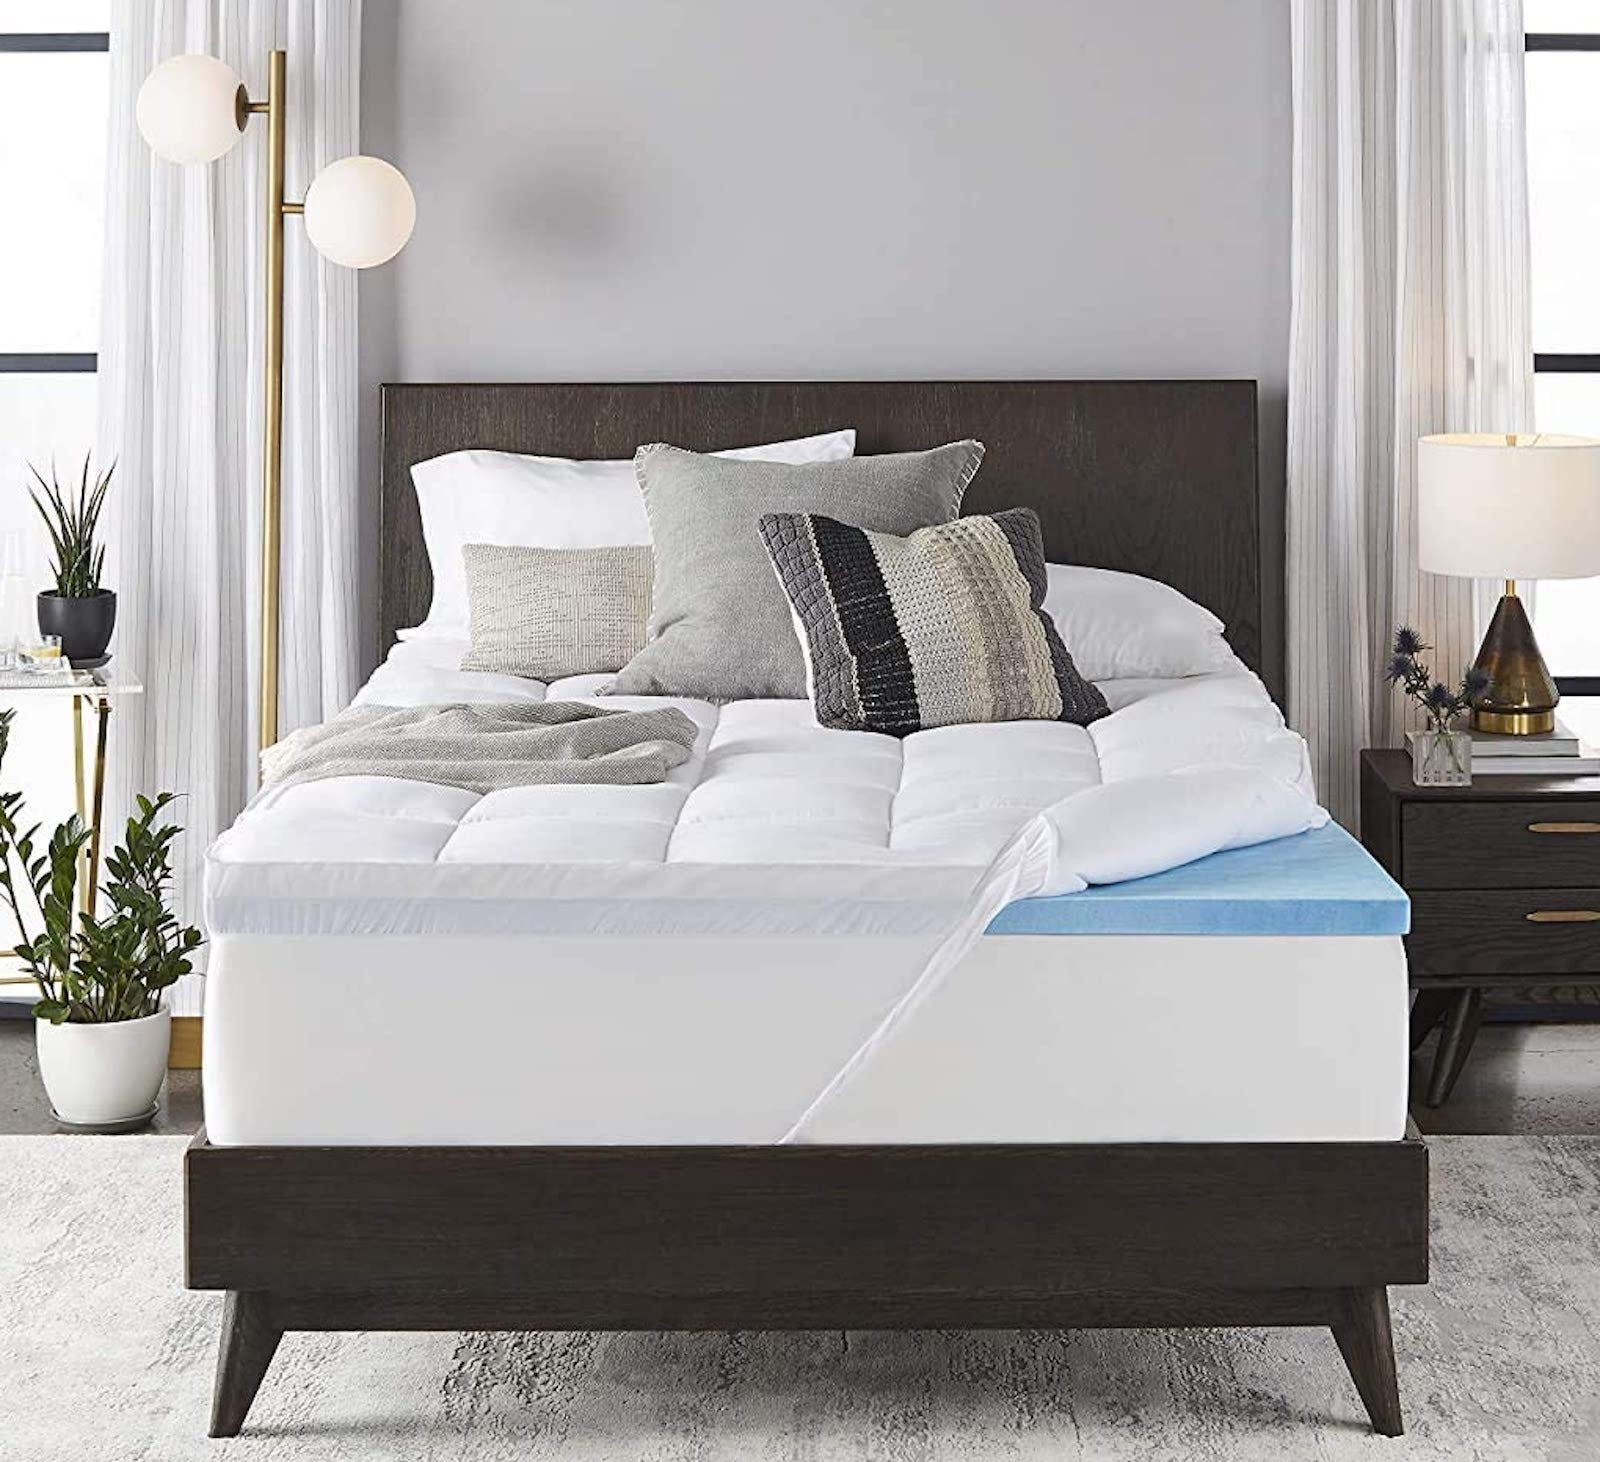 A bed with the white top pulled back to reveal a blue foam mattress pad